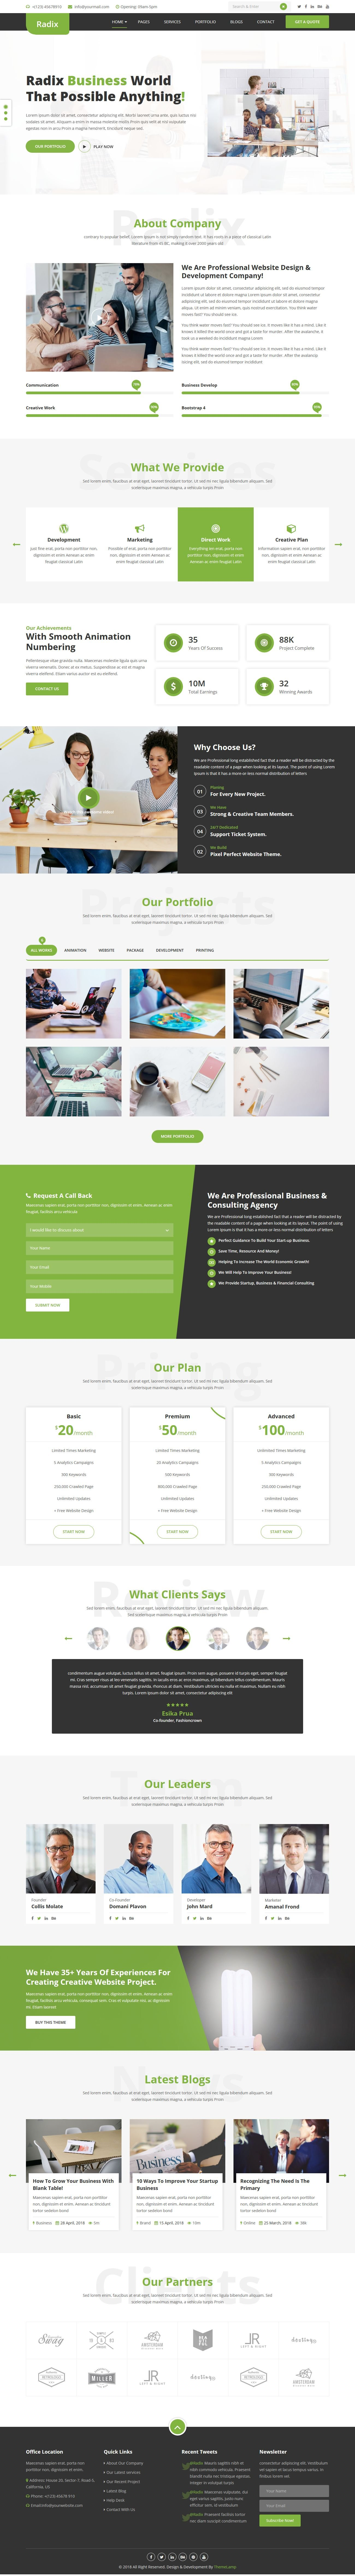 Radix - Multipurpose Consulting Template Screenshot 1